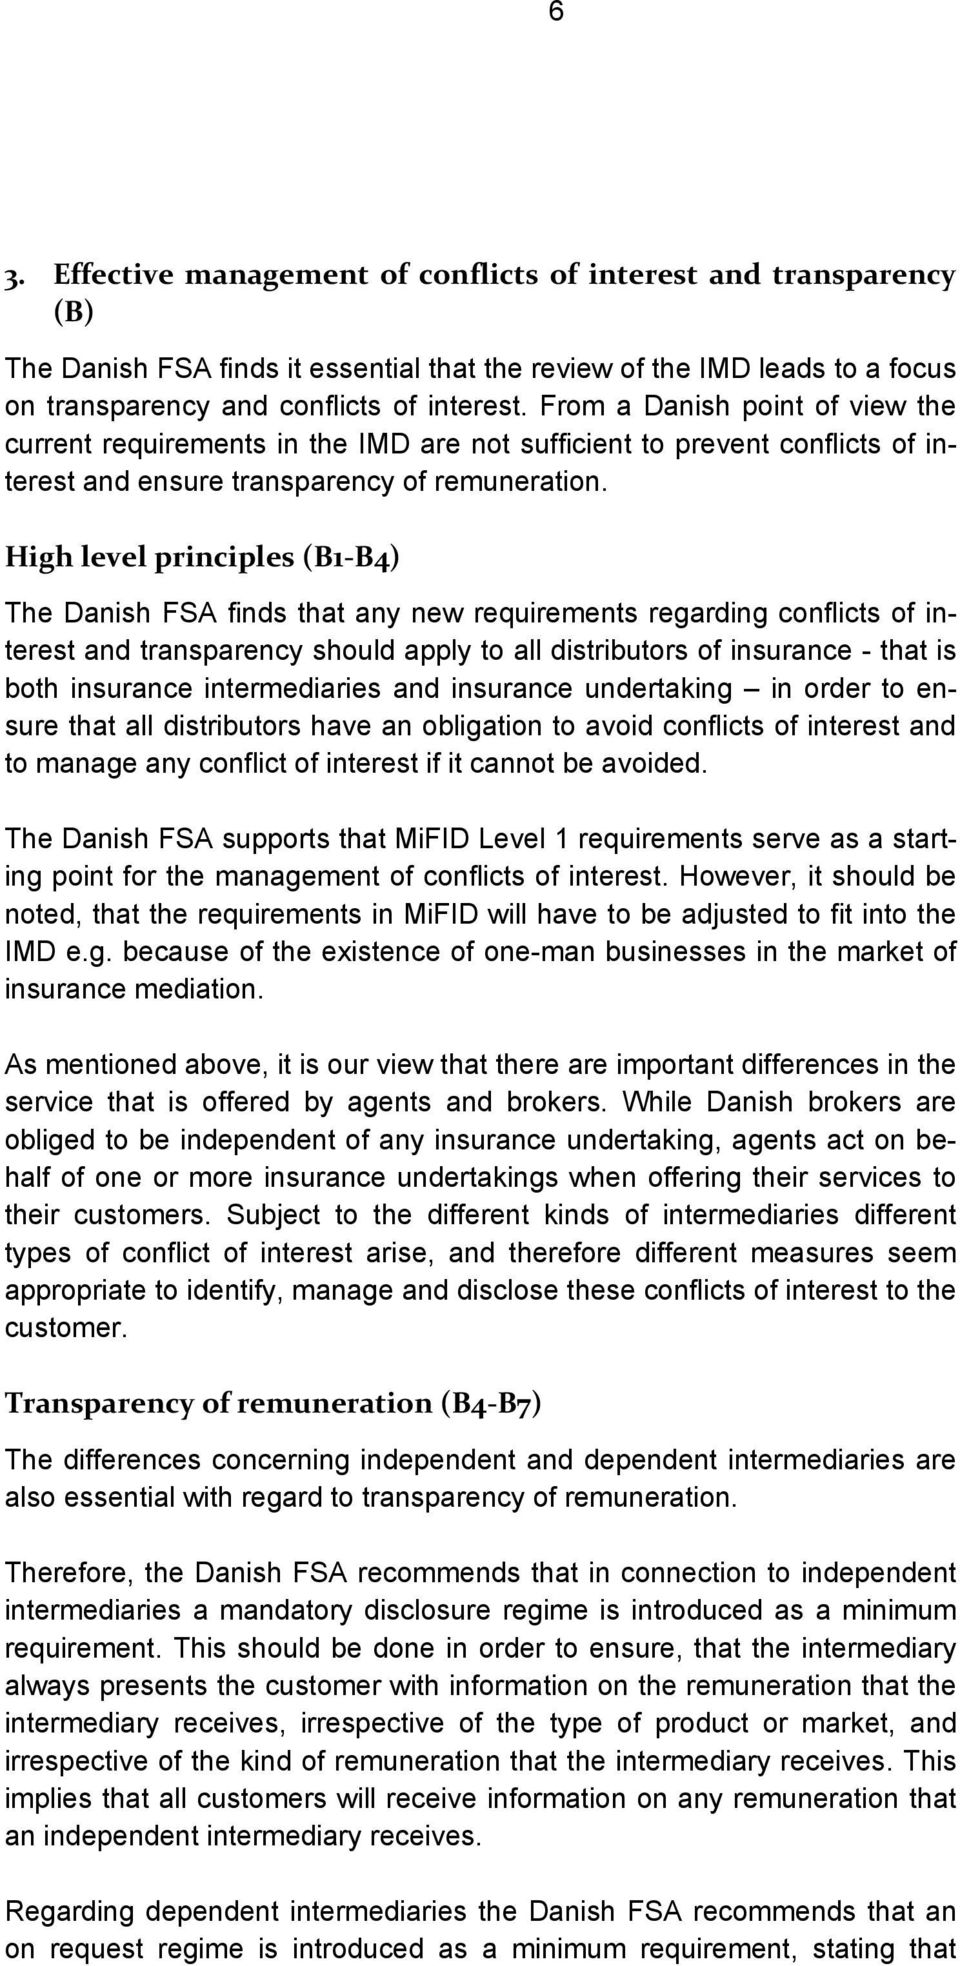 High level principles (B1-B4) The Danish FSA finds that any new requirements regarding conflicts of interest and transparency should apply to all distributors of insurance - that is both insurance